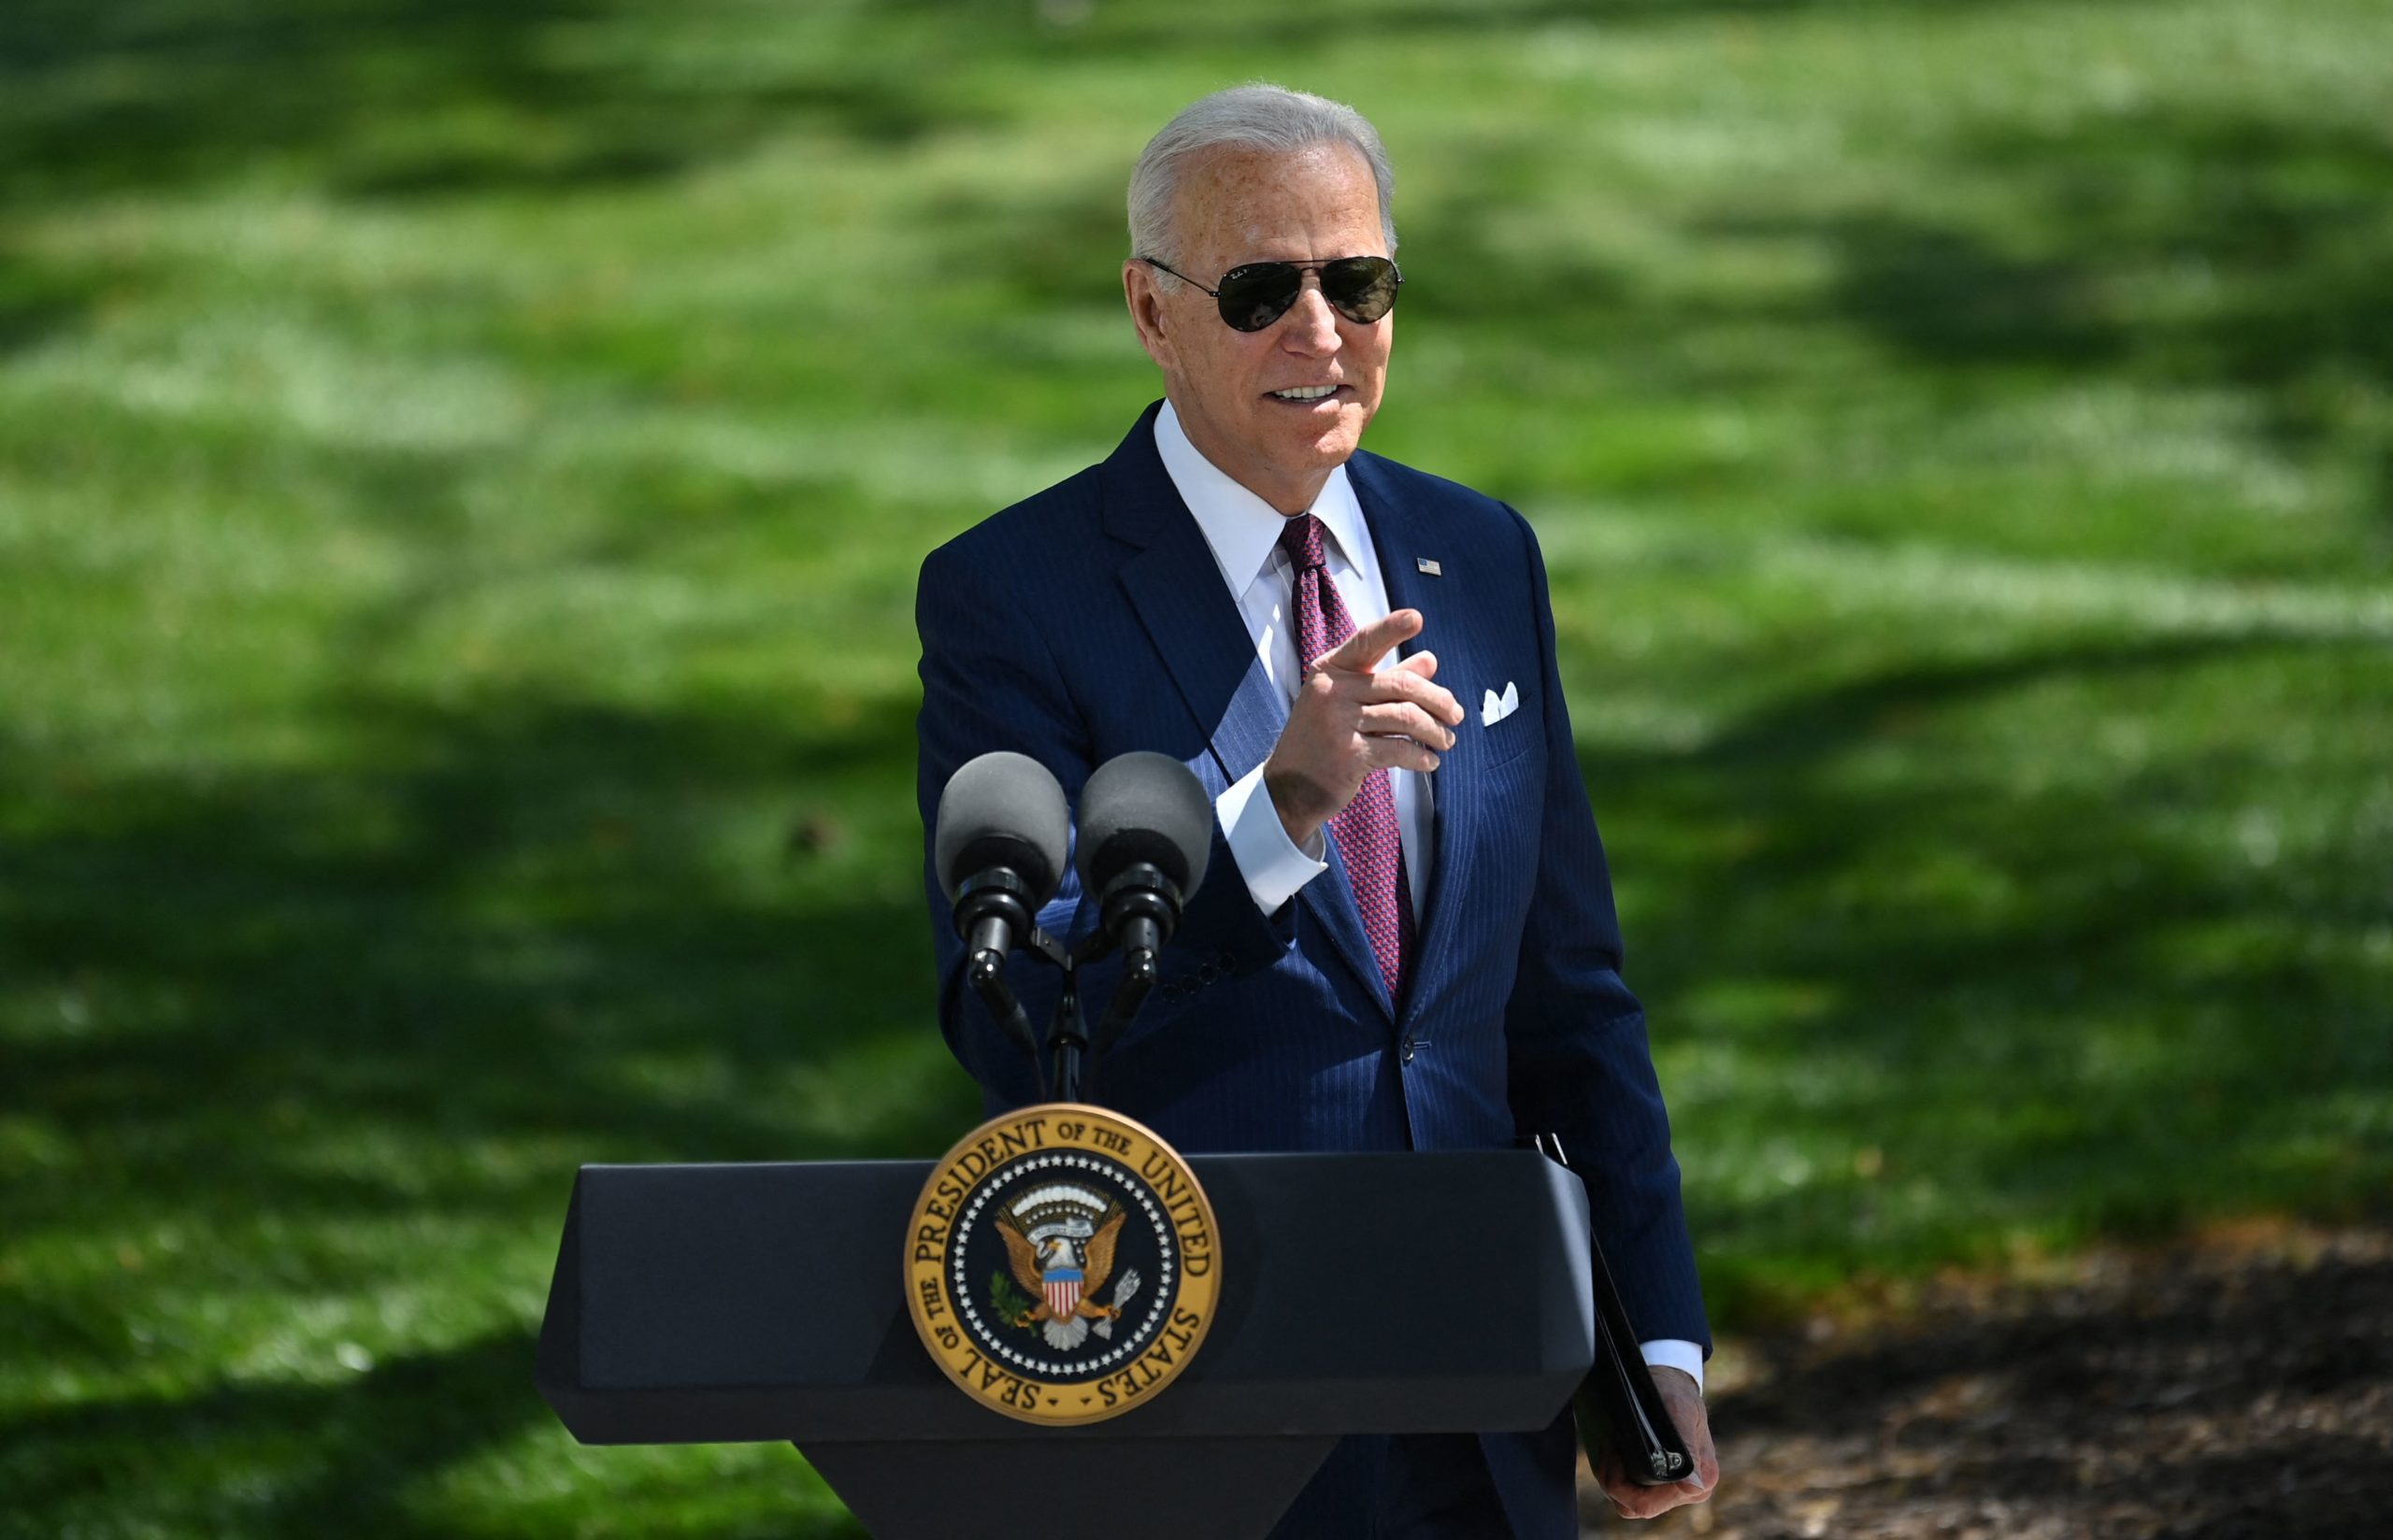 US President Joe Biden gestures as he delivers remarks on the Covid-19 response outside the White House in Washington, DC on April 27, 2021. (Photo by BRENDAN SMIALOWSKI/AFP via Getty Images)